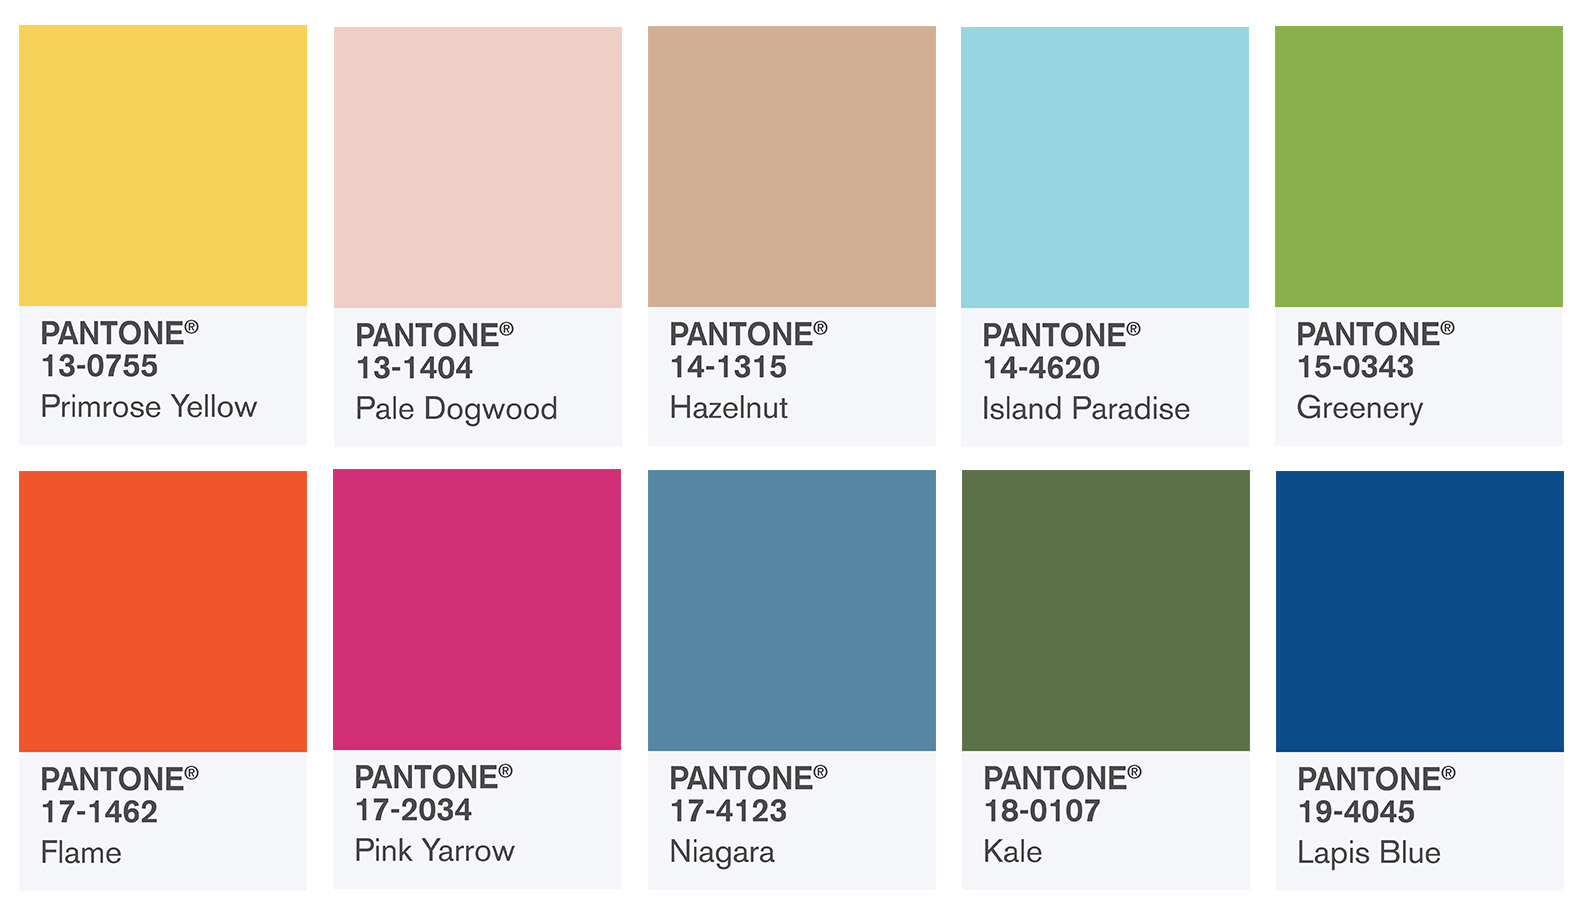 Interior Design Color Ideas - Panatone's Spring 2017 at CIH Design